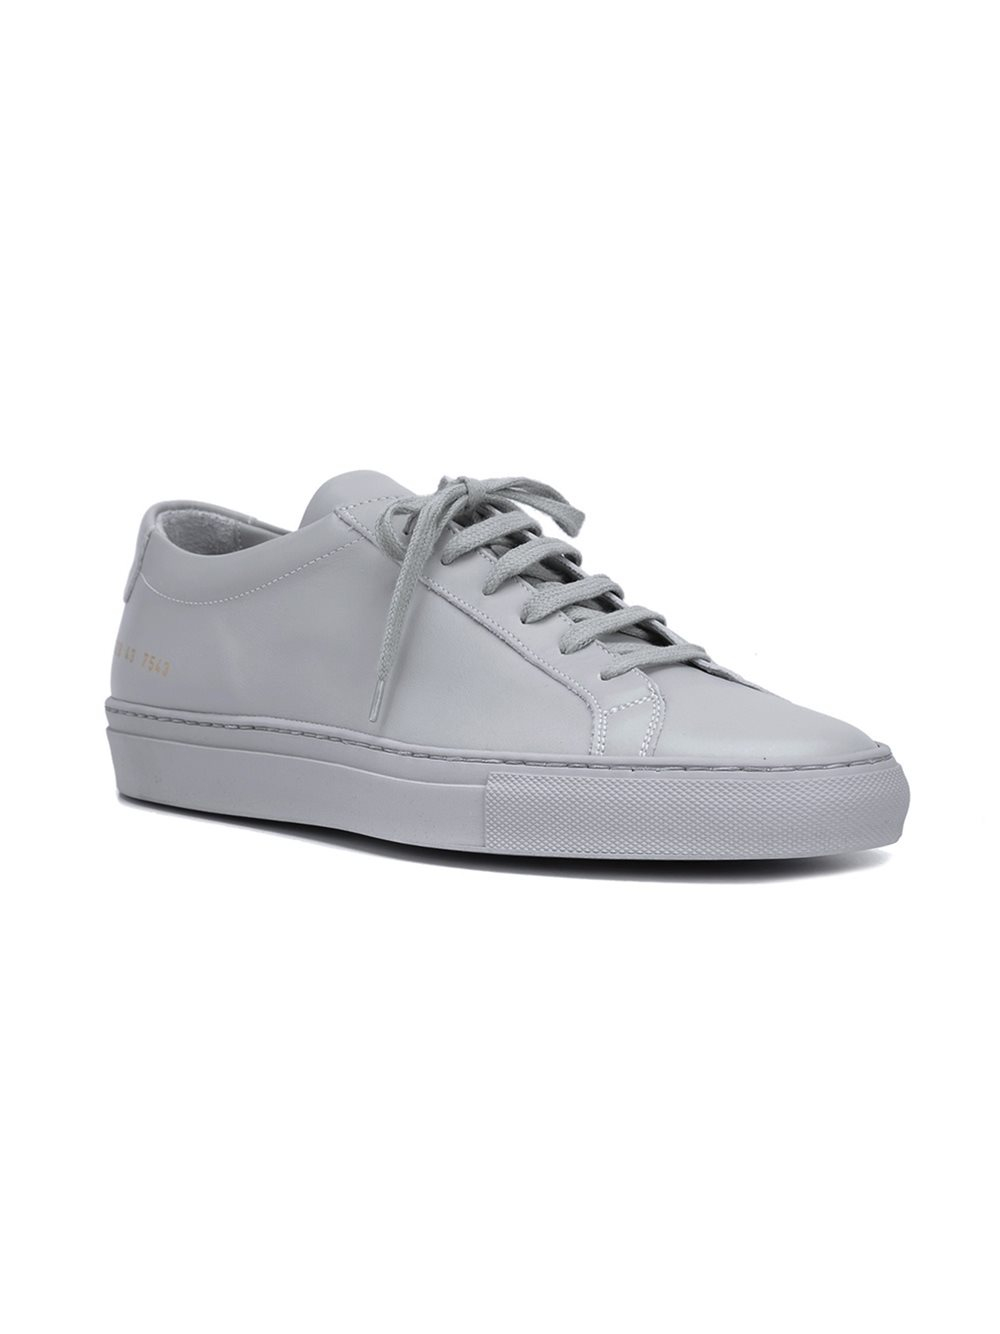 common projects original achilles low sneakers in white for men grey lyst. Black Bedroom Furniture Sets. Home Design Ideas